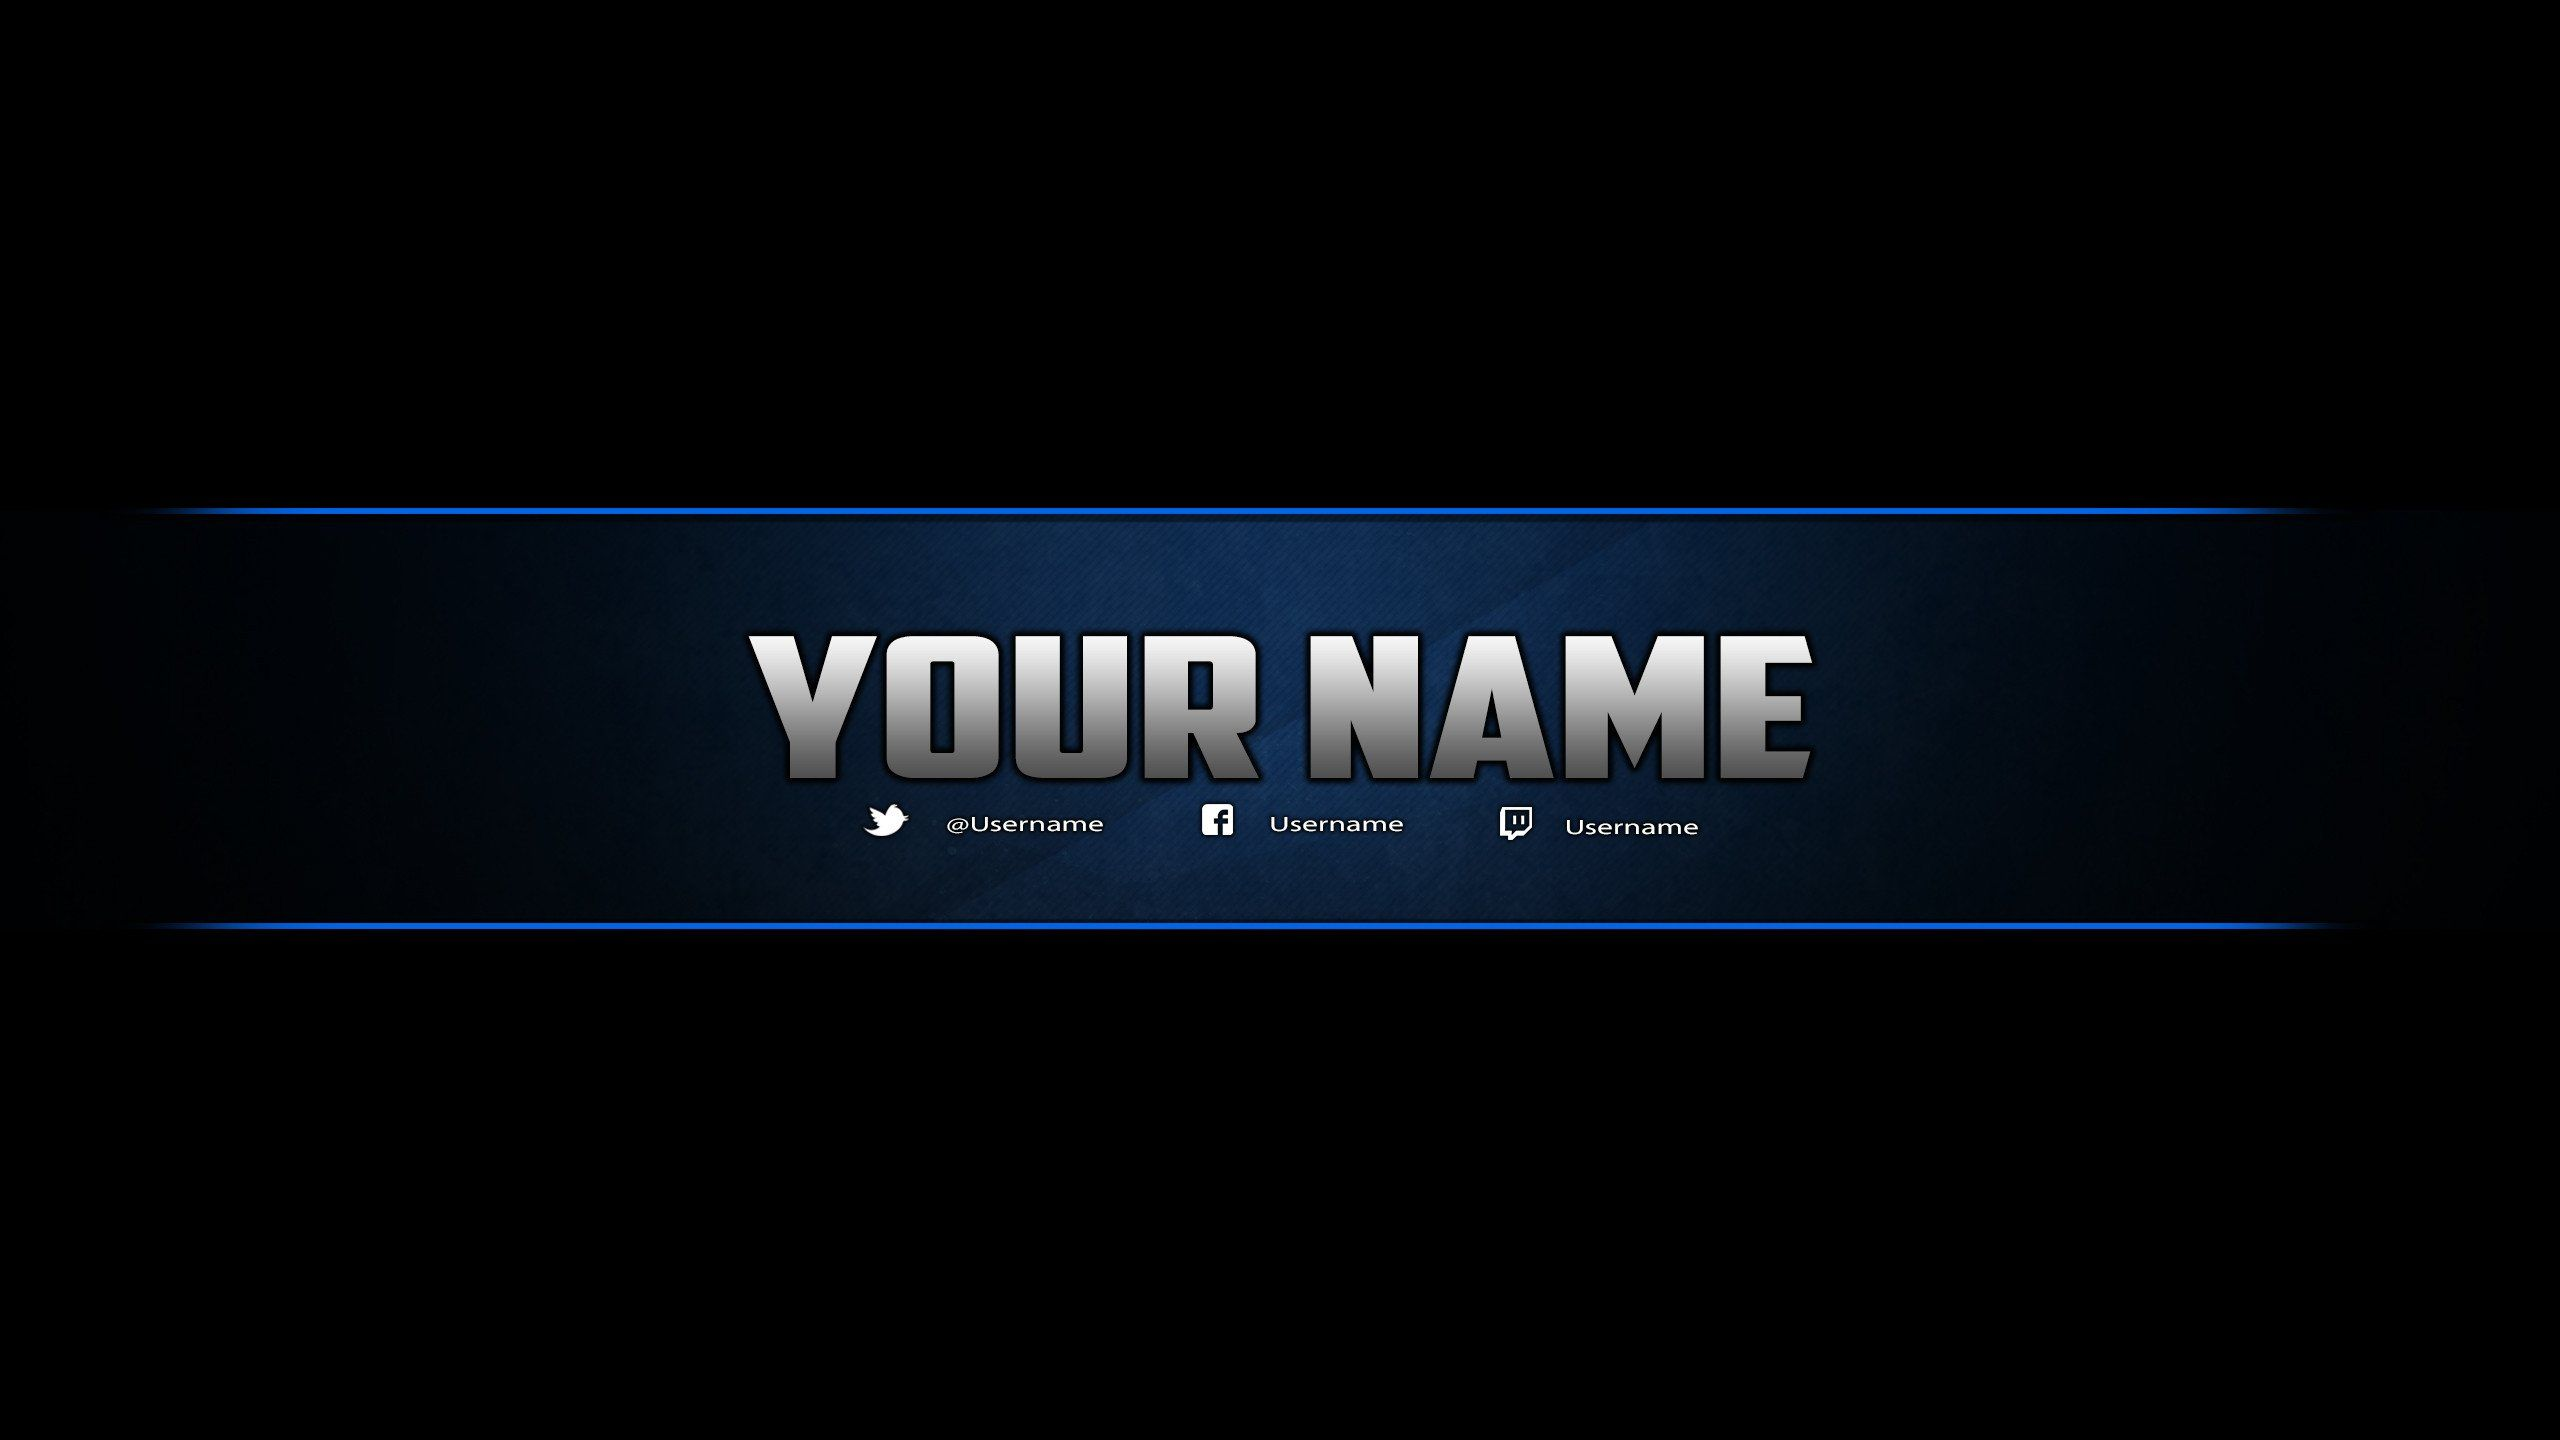 Youtube Banner Template Photoshop Awesome Youtube Banner Template Shop By Dazgames On Deviant In 2020 Youtube Banner Template Banner Template Photoshop Banner Template